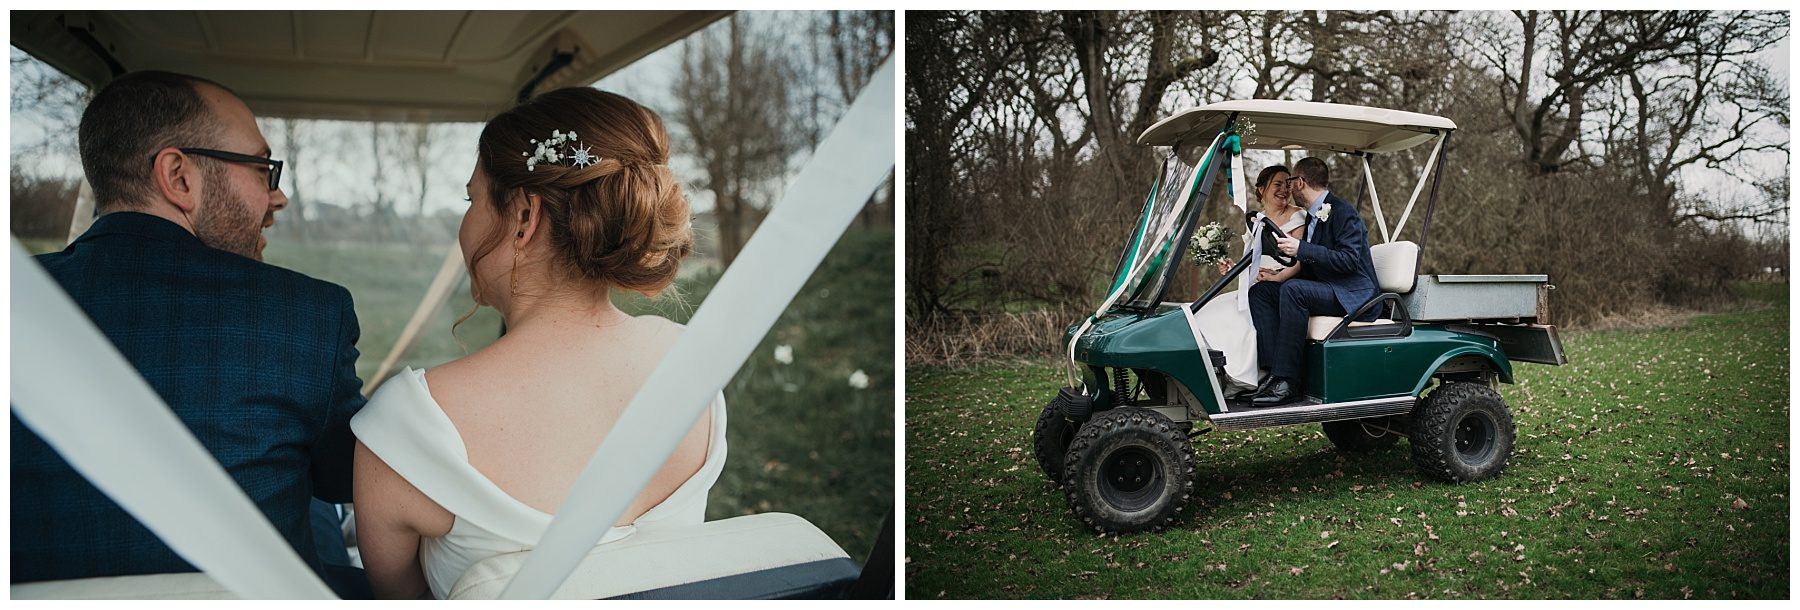 married couple in golf kart or buggy